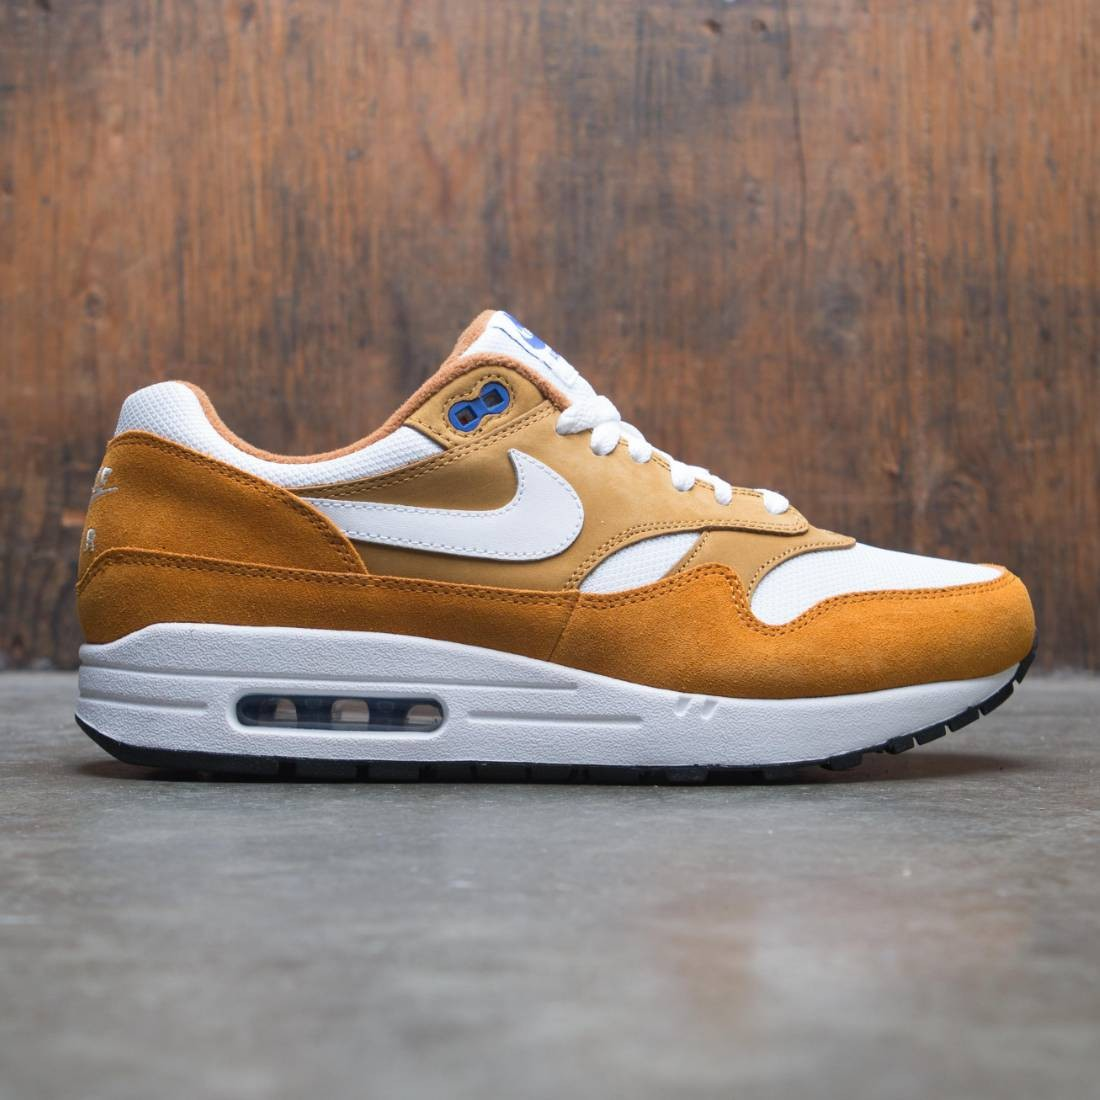 Nike Men Air Max 1 Premium Retro - Curry Pack (dark curry / true white-sport blue-black)